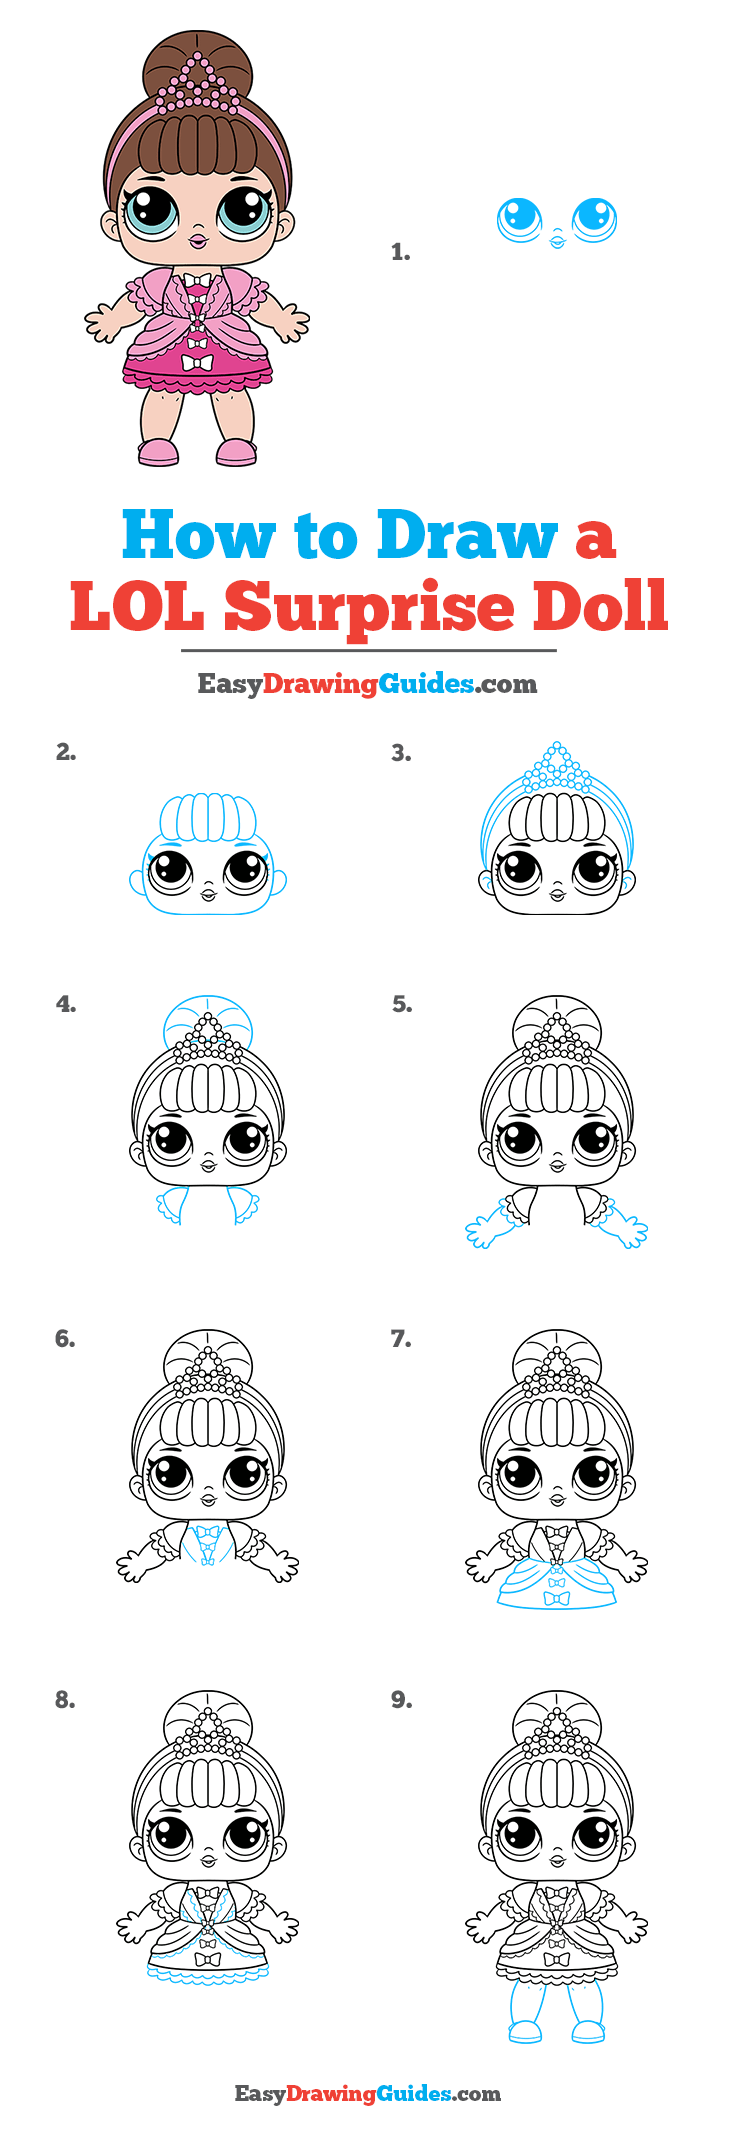 How to Draw a LOL Surprise Doll Step by Step Tutorial Image